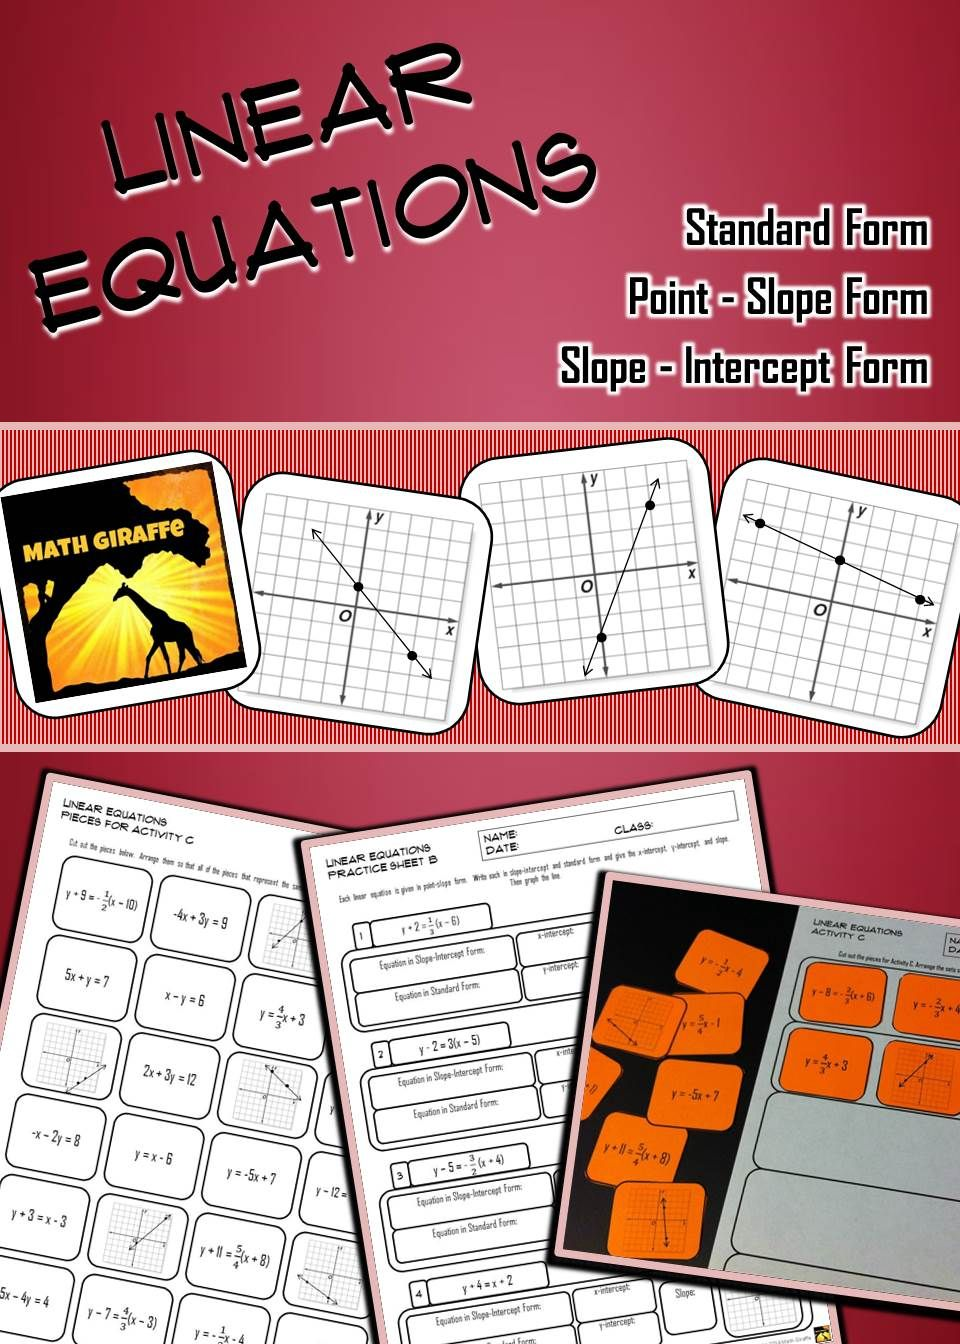 Linear equations practice activities standard form equation and activities practicing standard form slope intercept form and point slope form for falaconquin